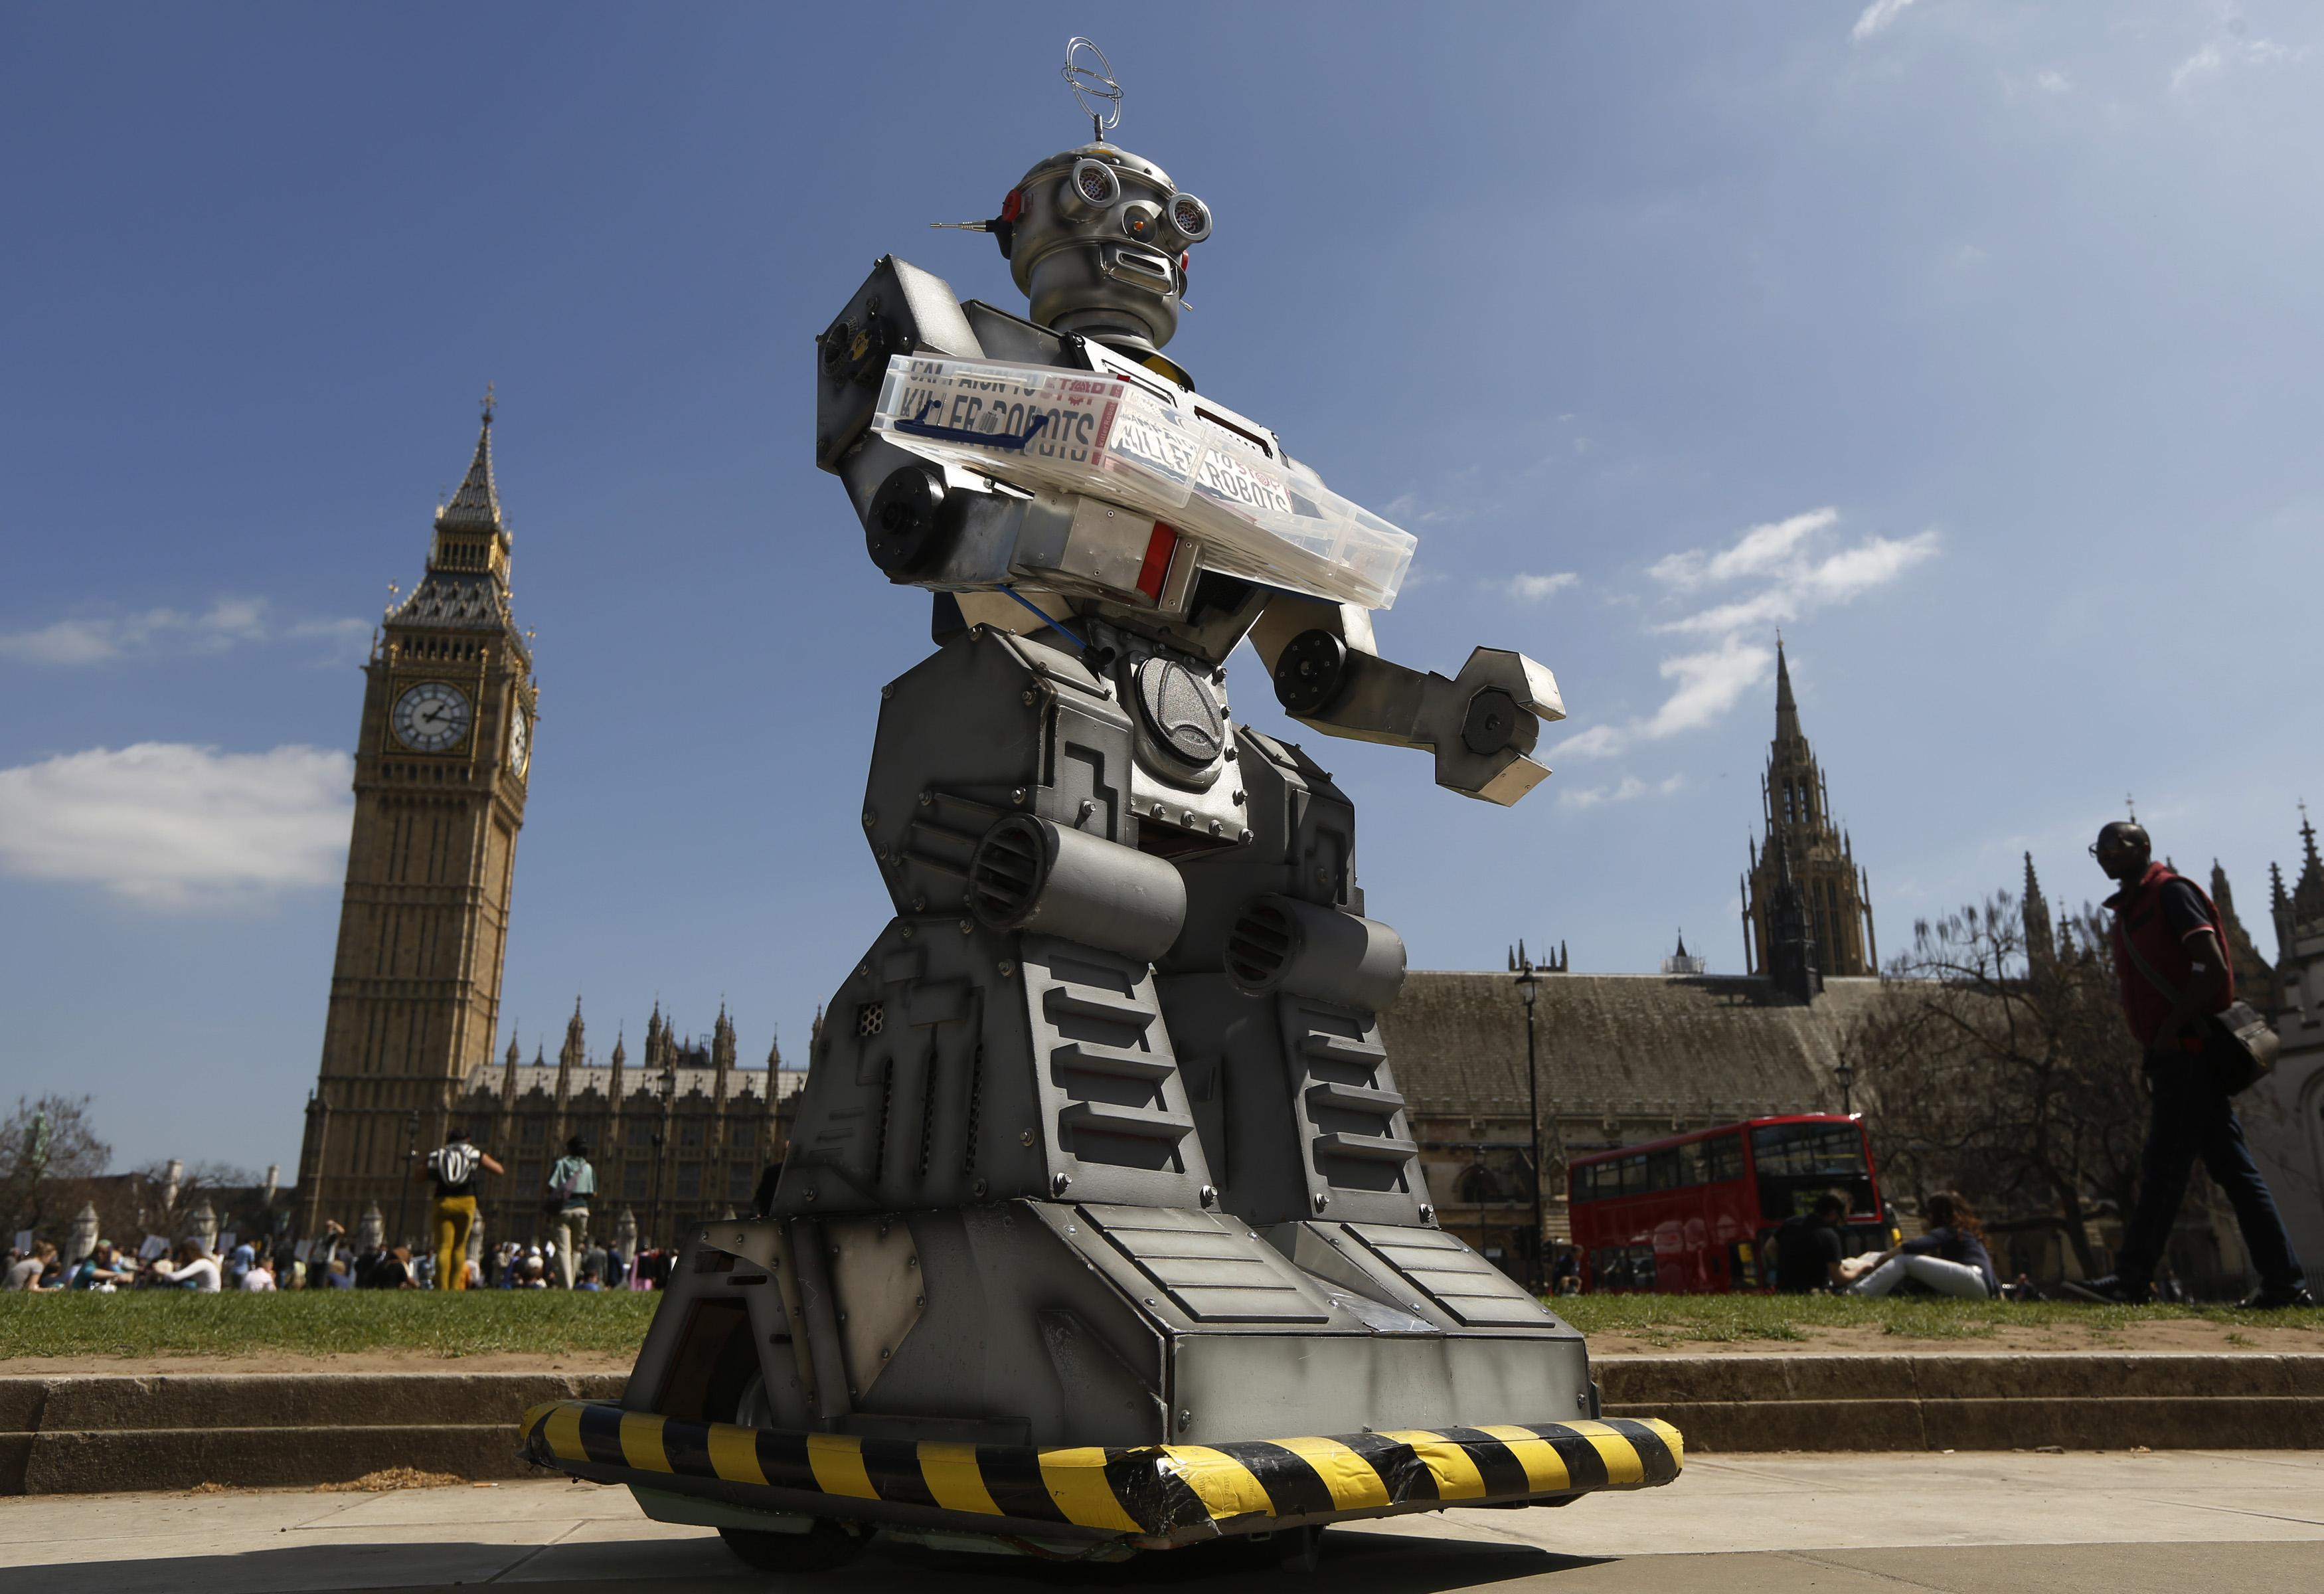 Tech leaders warn against 'Pandora's box' of robotic weapons